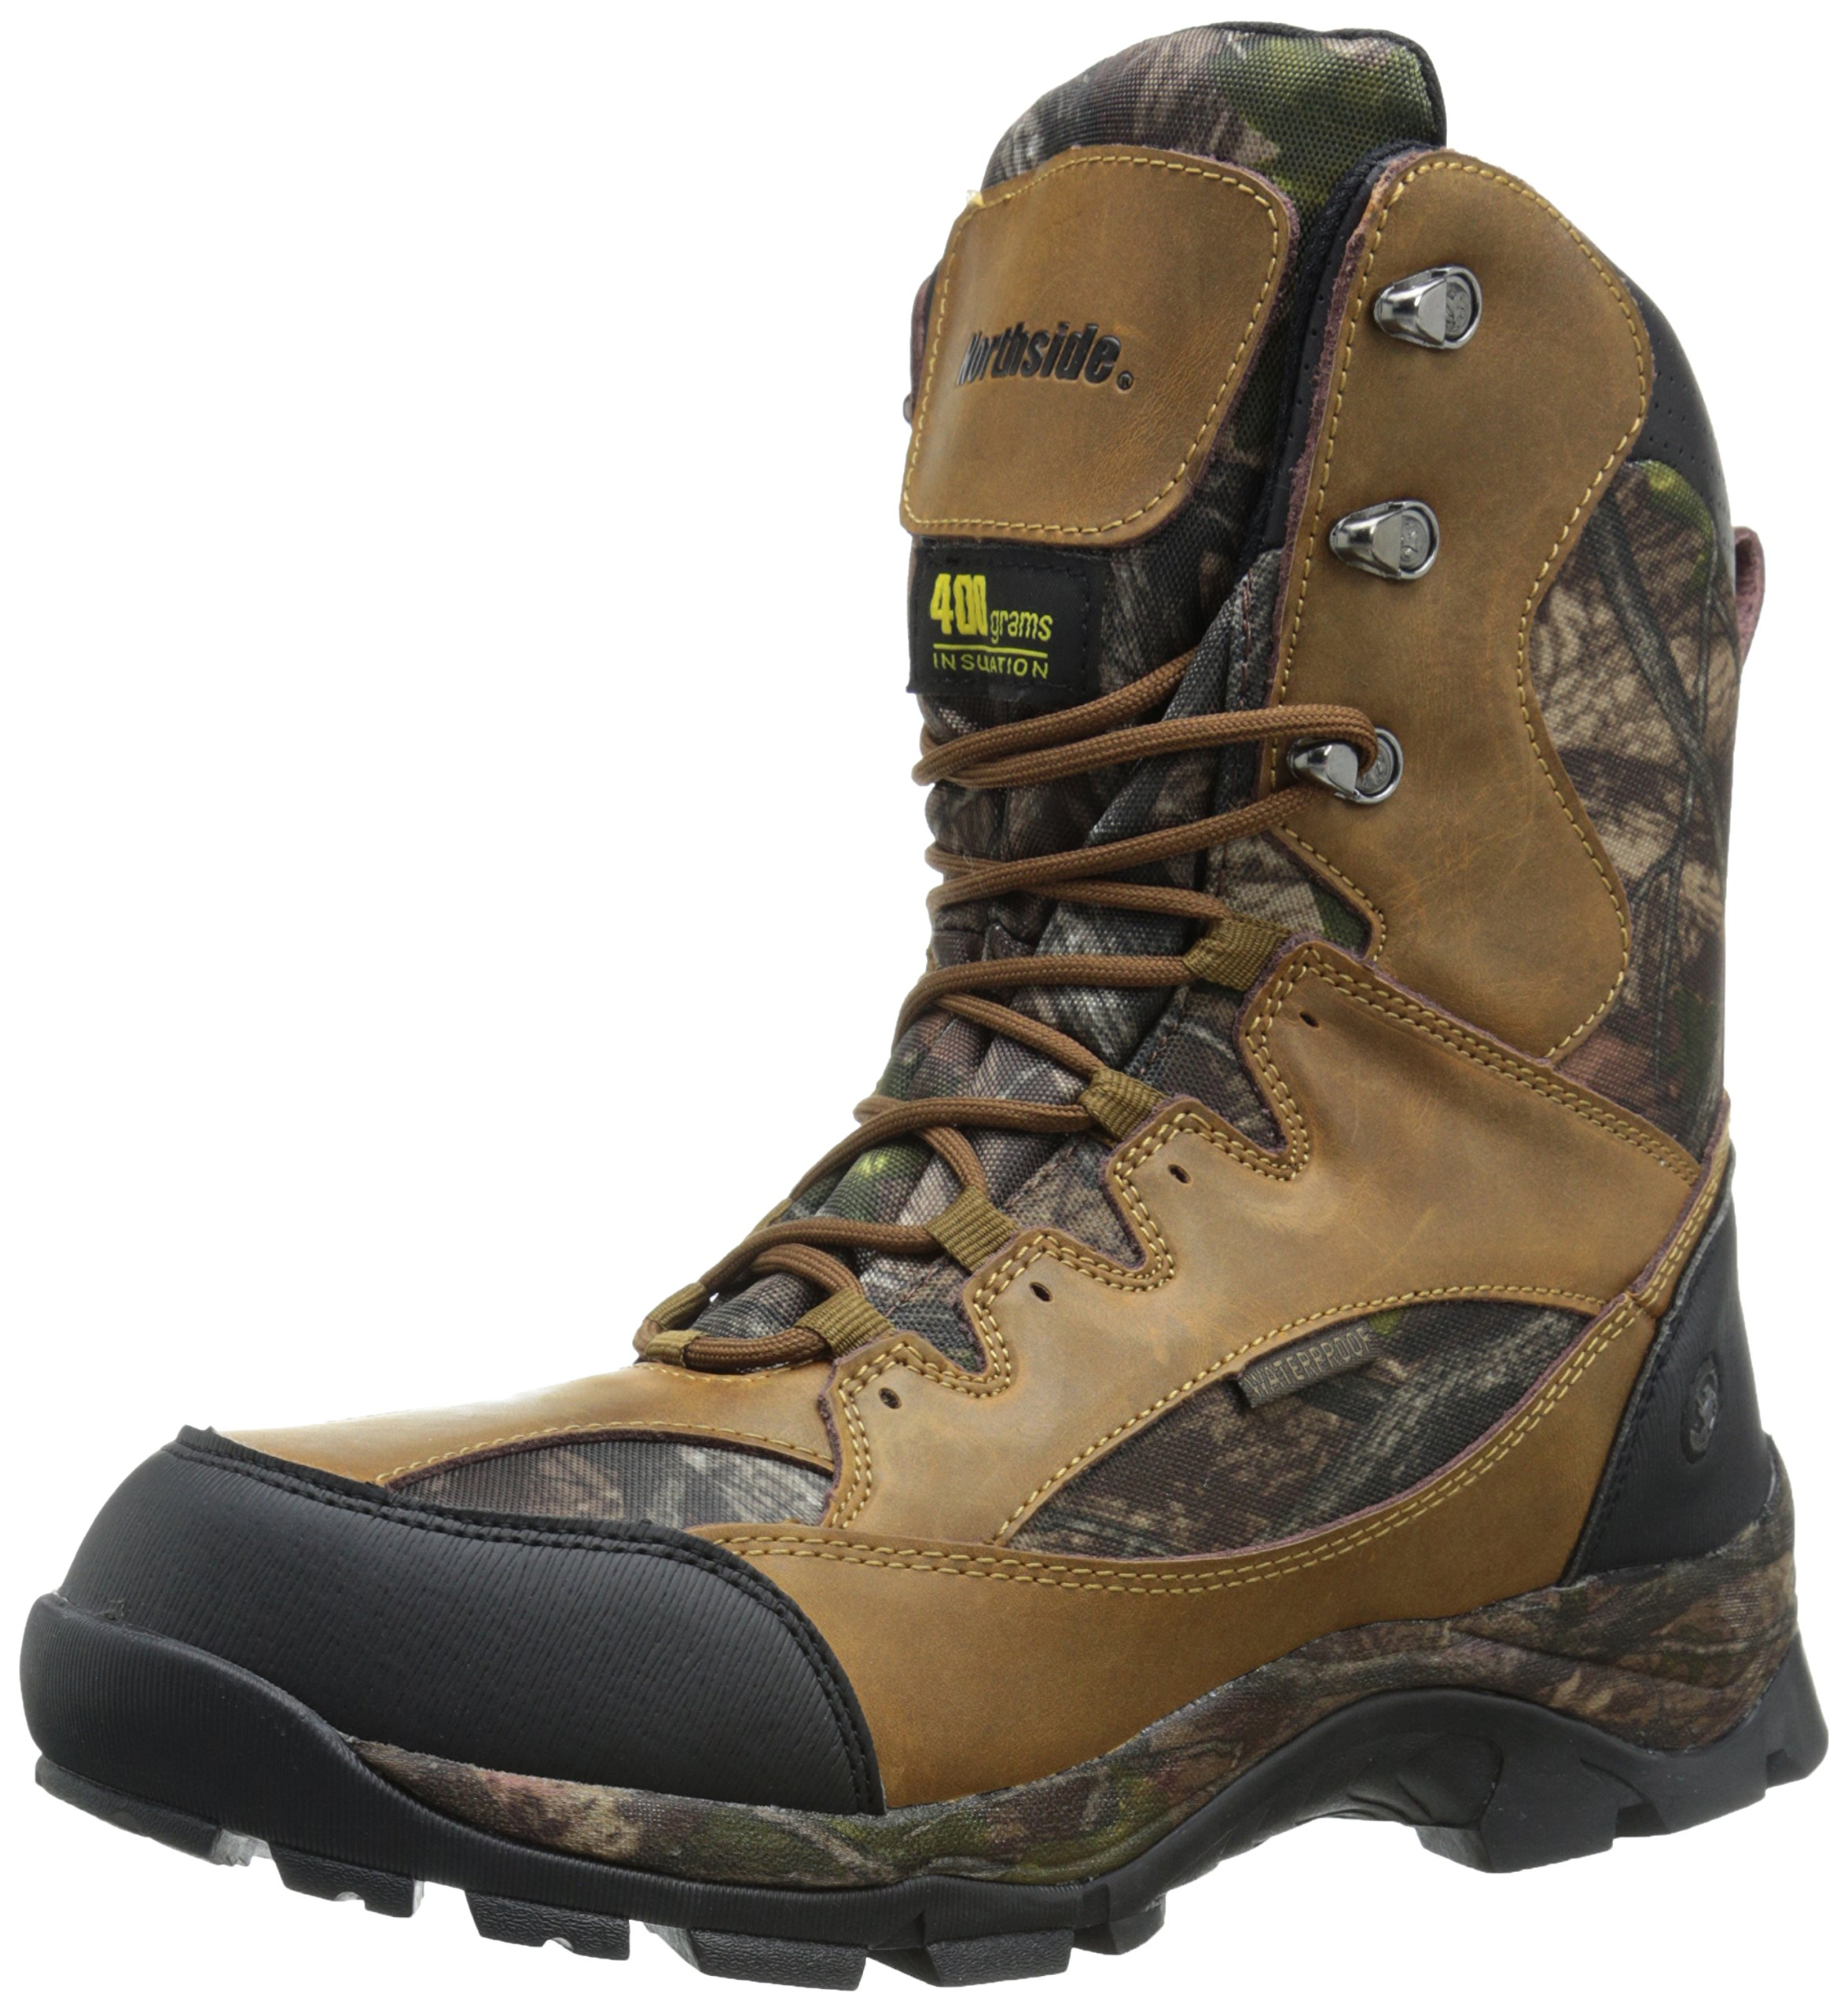 Northside Men's Renegade 400 Hunting Boot, Tan Camo, 12 M US by Northside